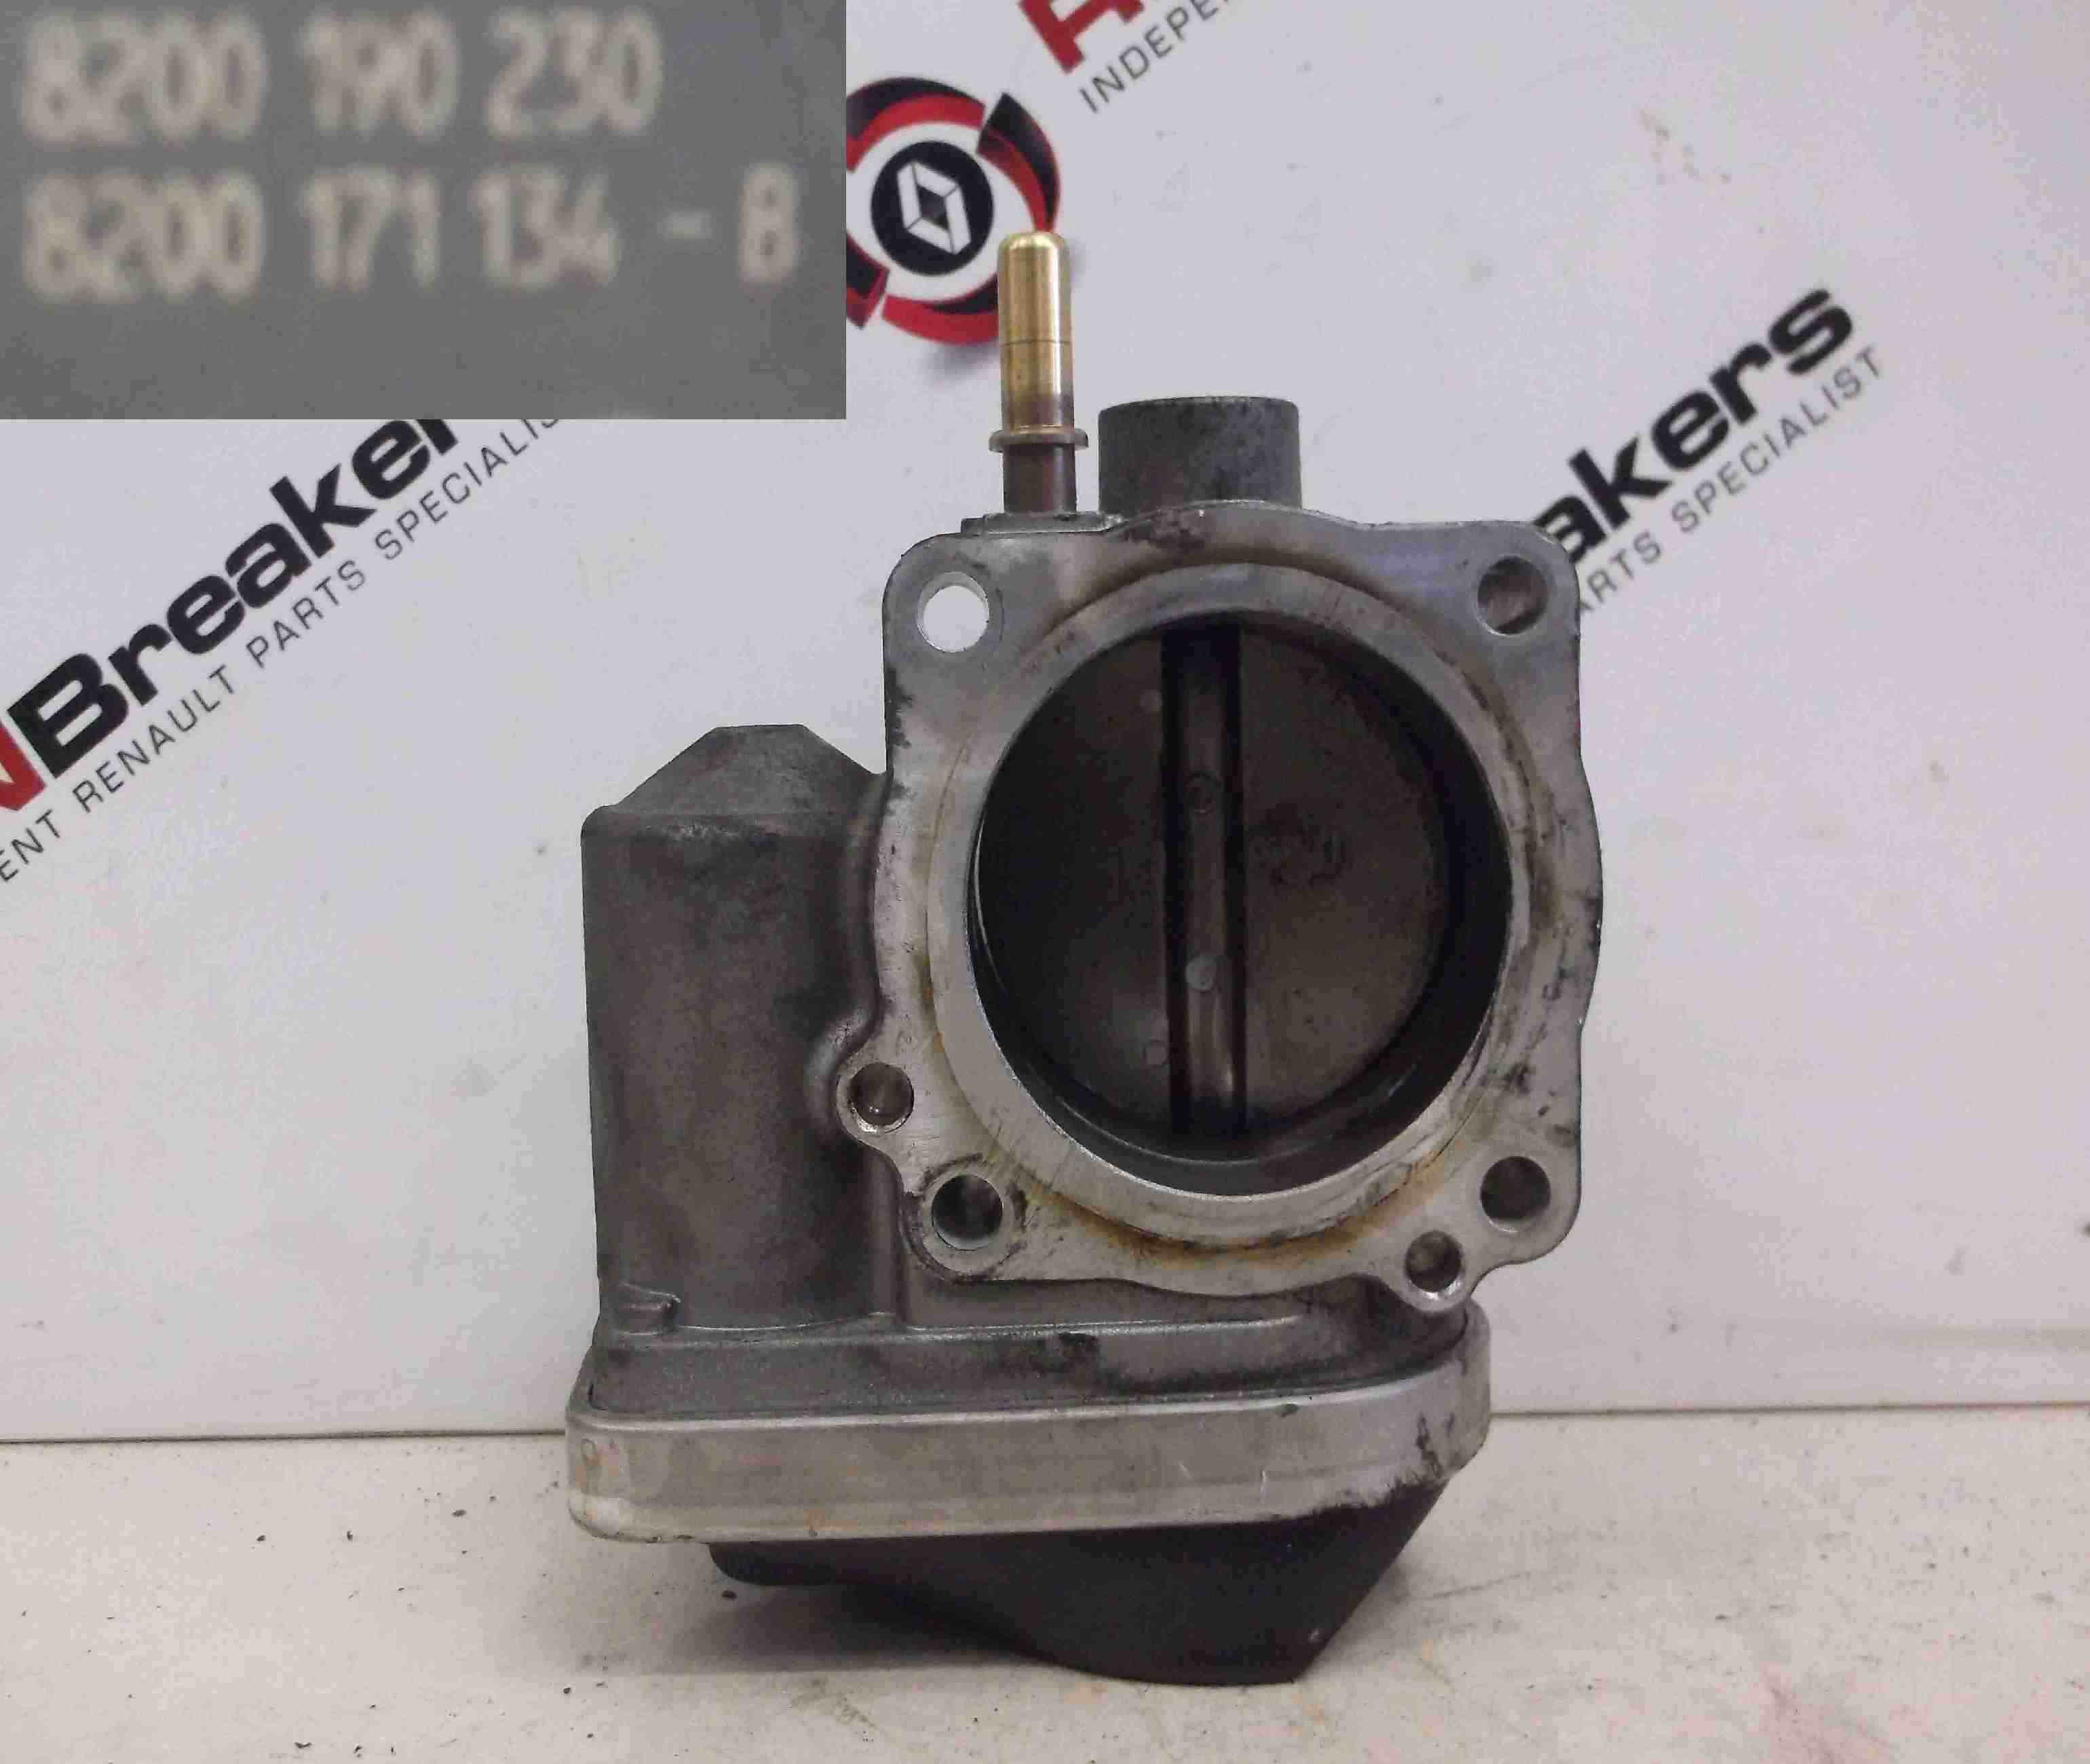 Renault Megane Scenic 2003-2009 1.6 16v Throttle Body Electronic 8200190230